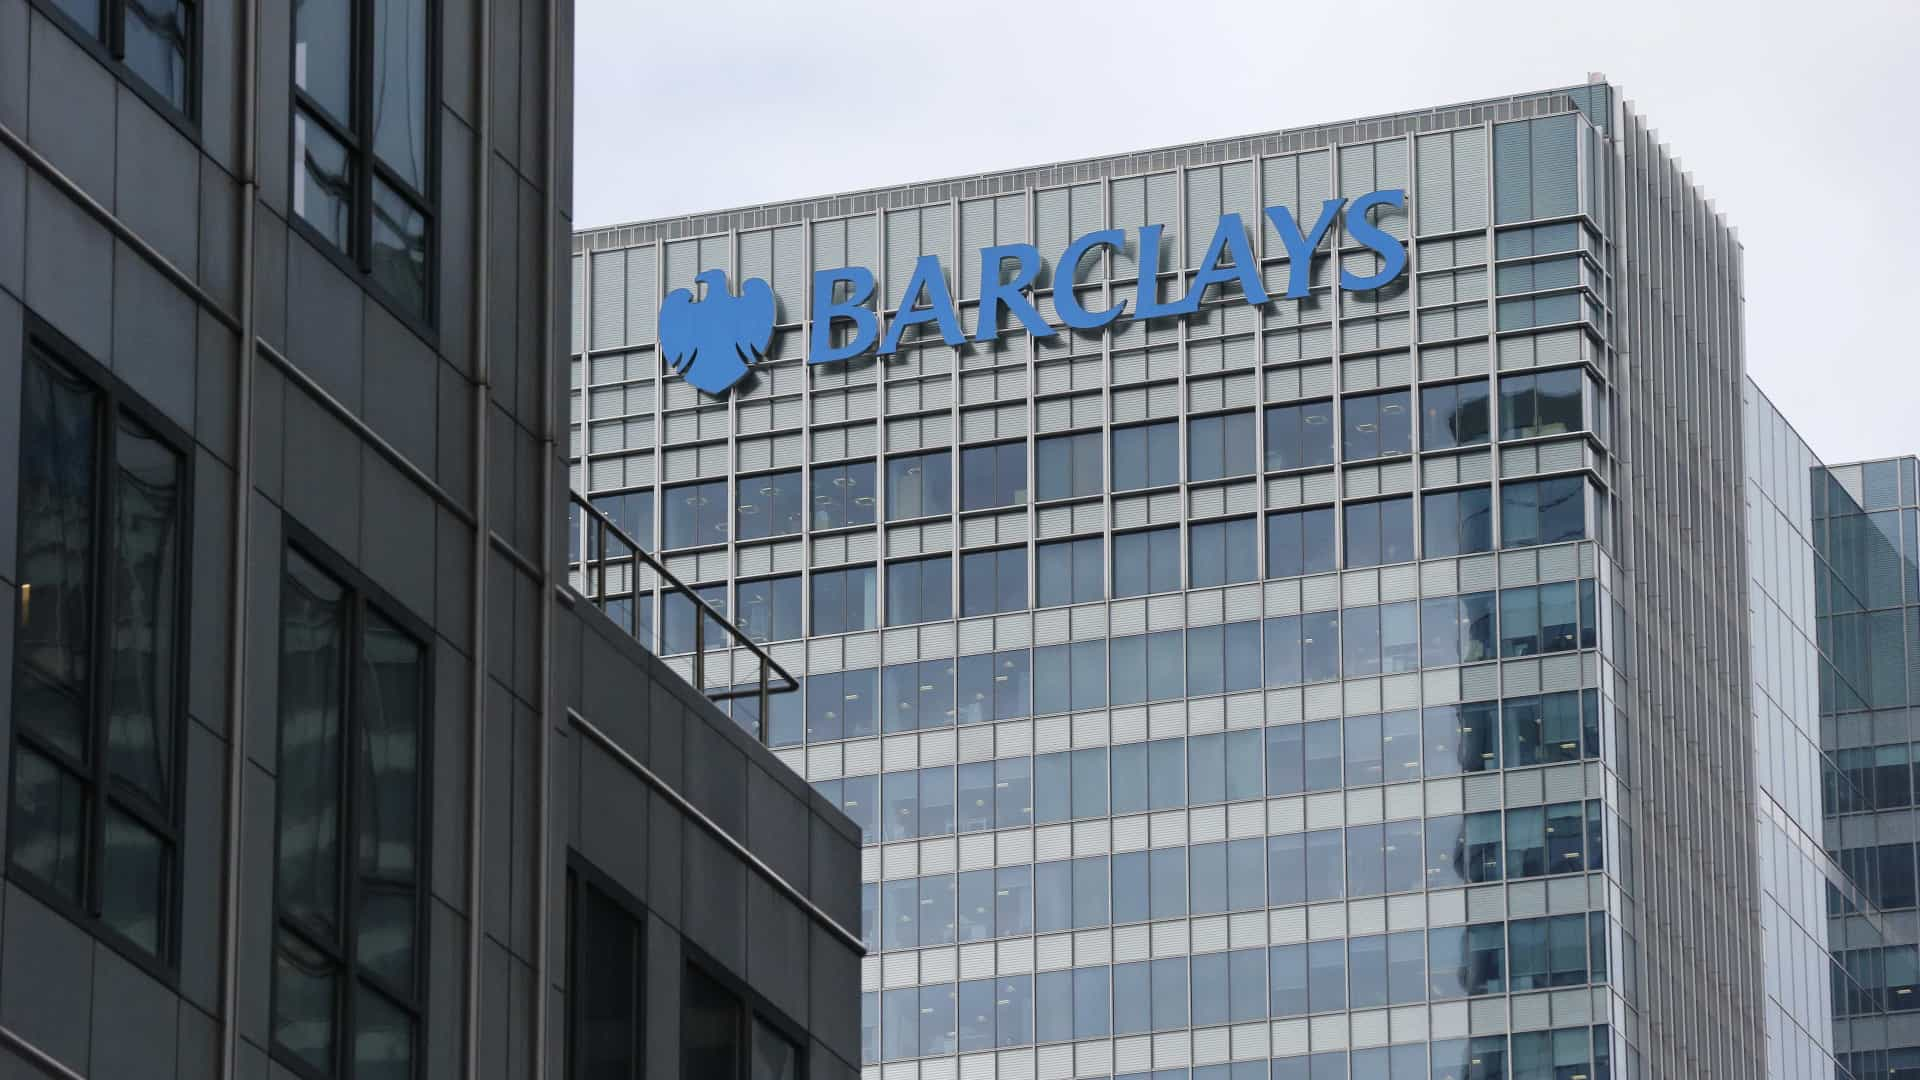 Antigos executivos do banco Barclays acusados de fraude no Reino Unido